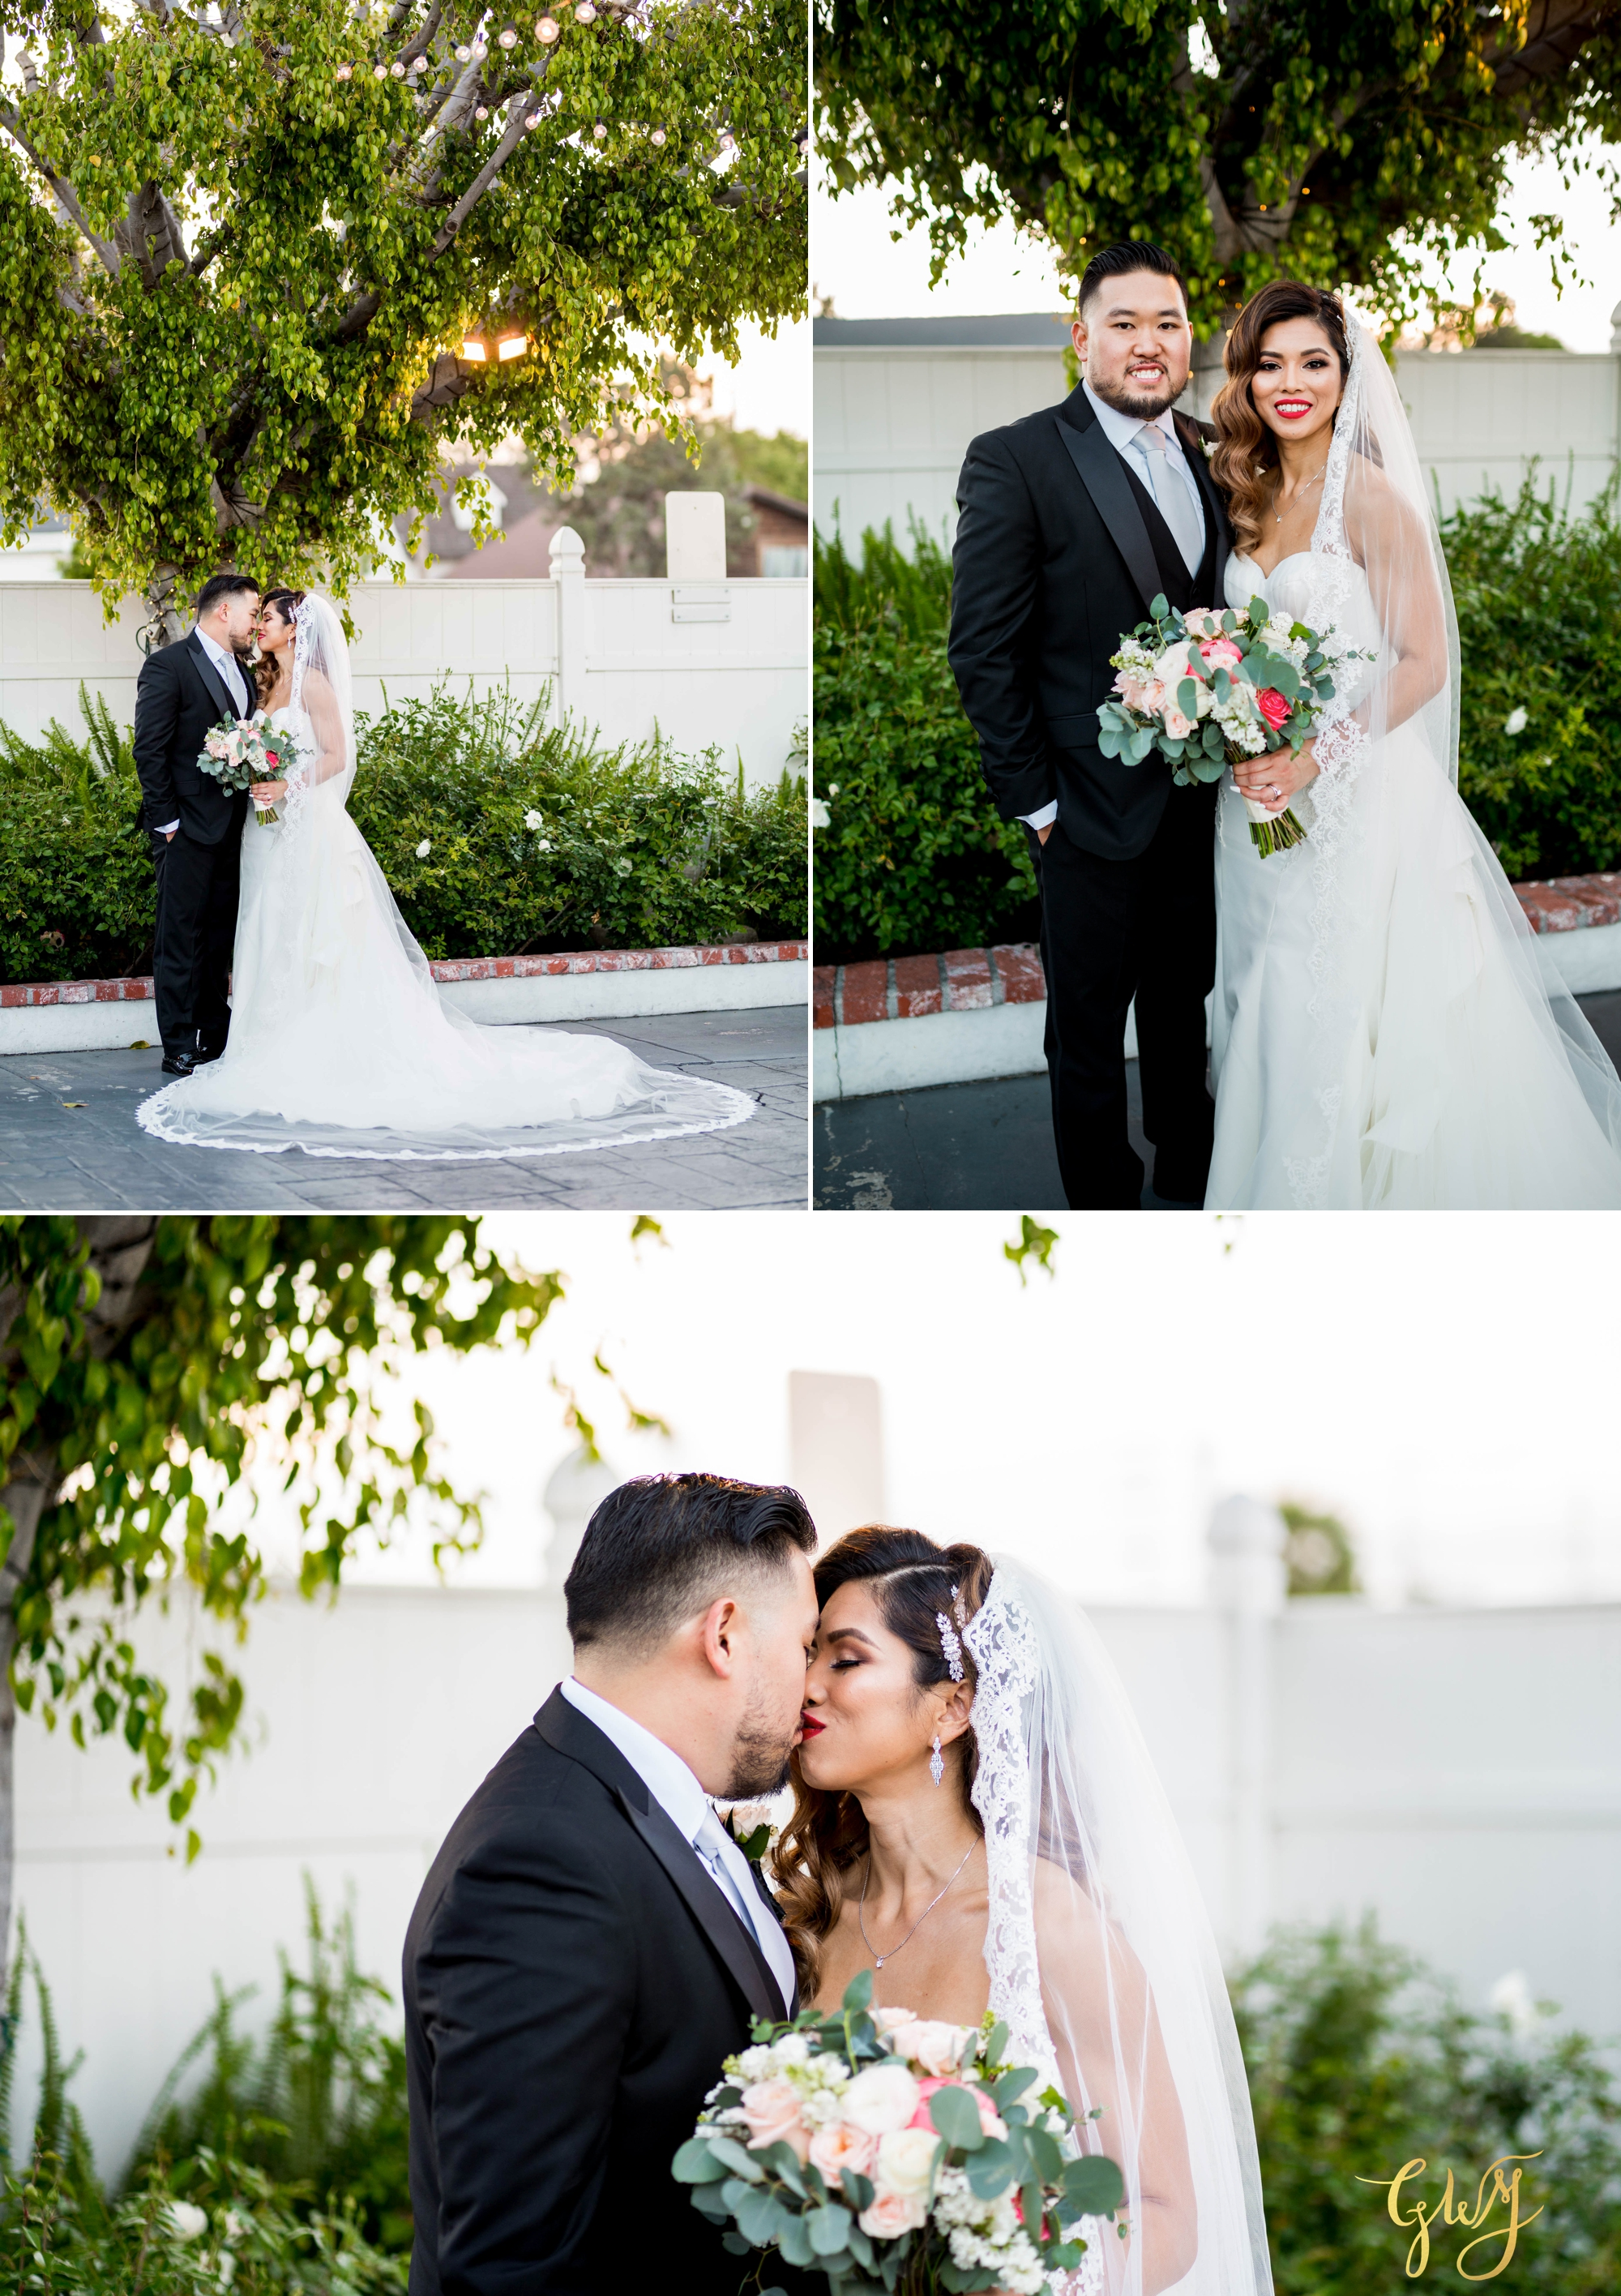 Andy + Caselyn's White House Event Center Orange County Spring Wedding by Glass Woods Media 35.jpg